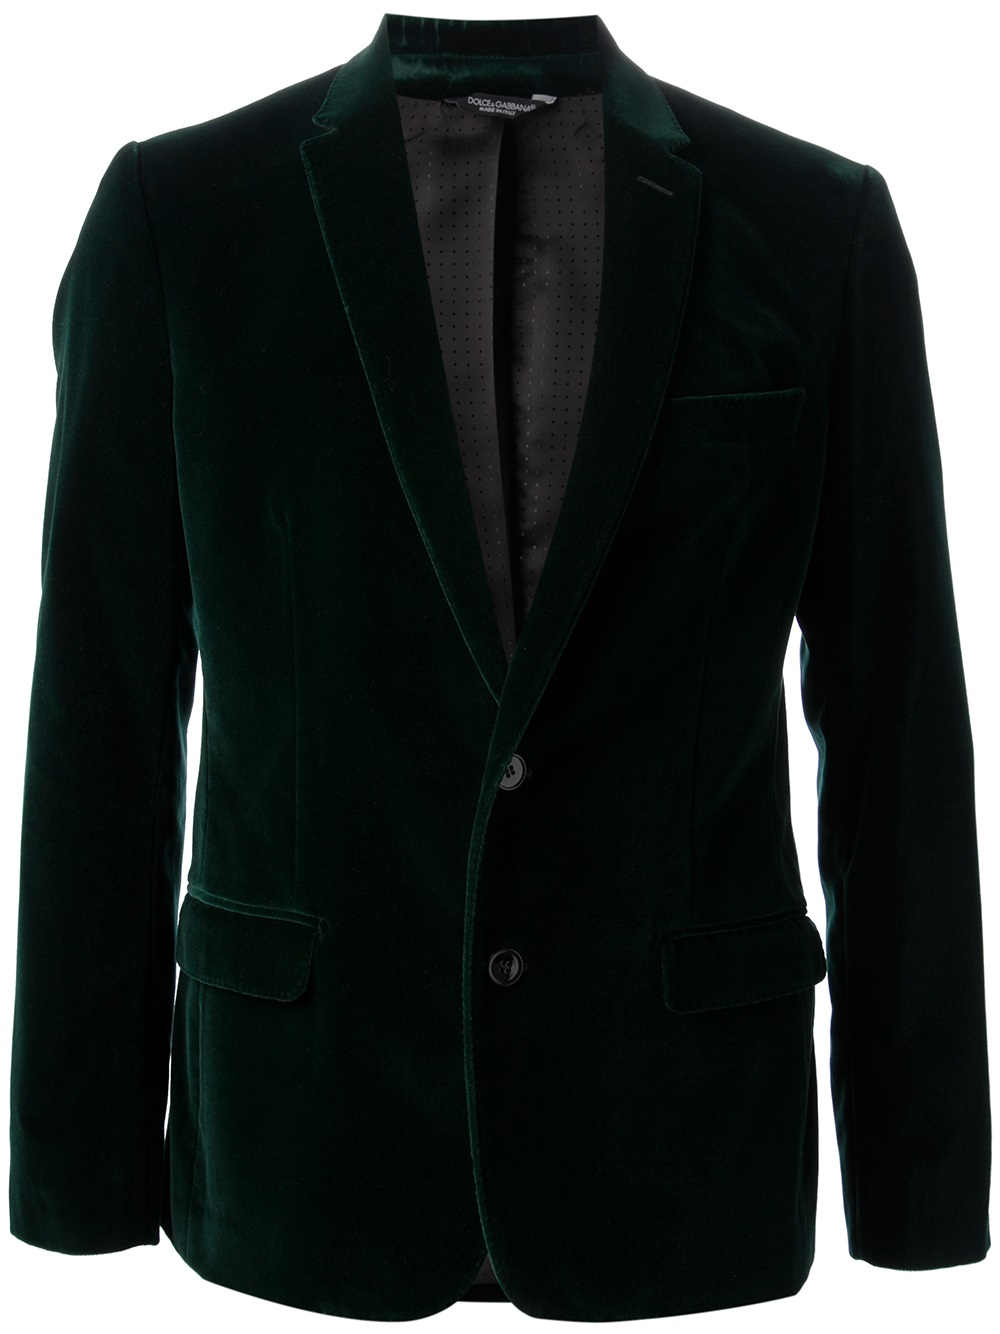 Velvet by Graham & Spencer Jackets.